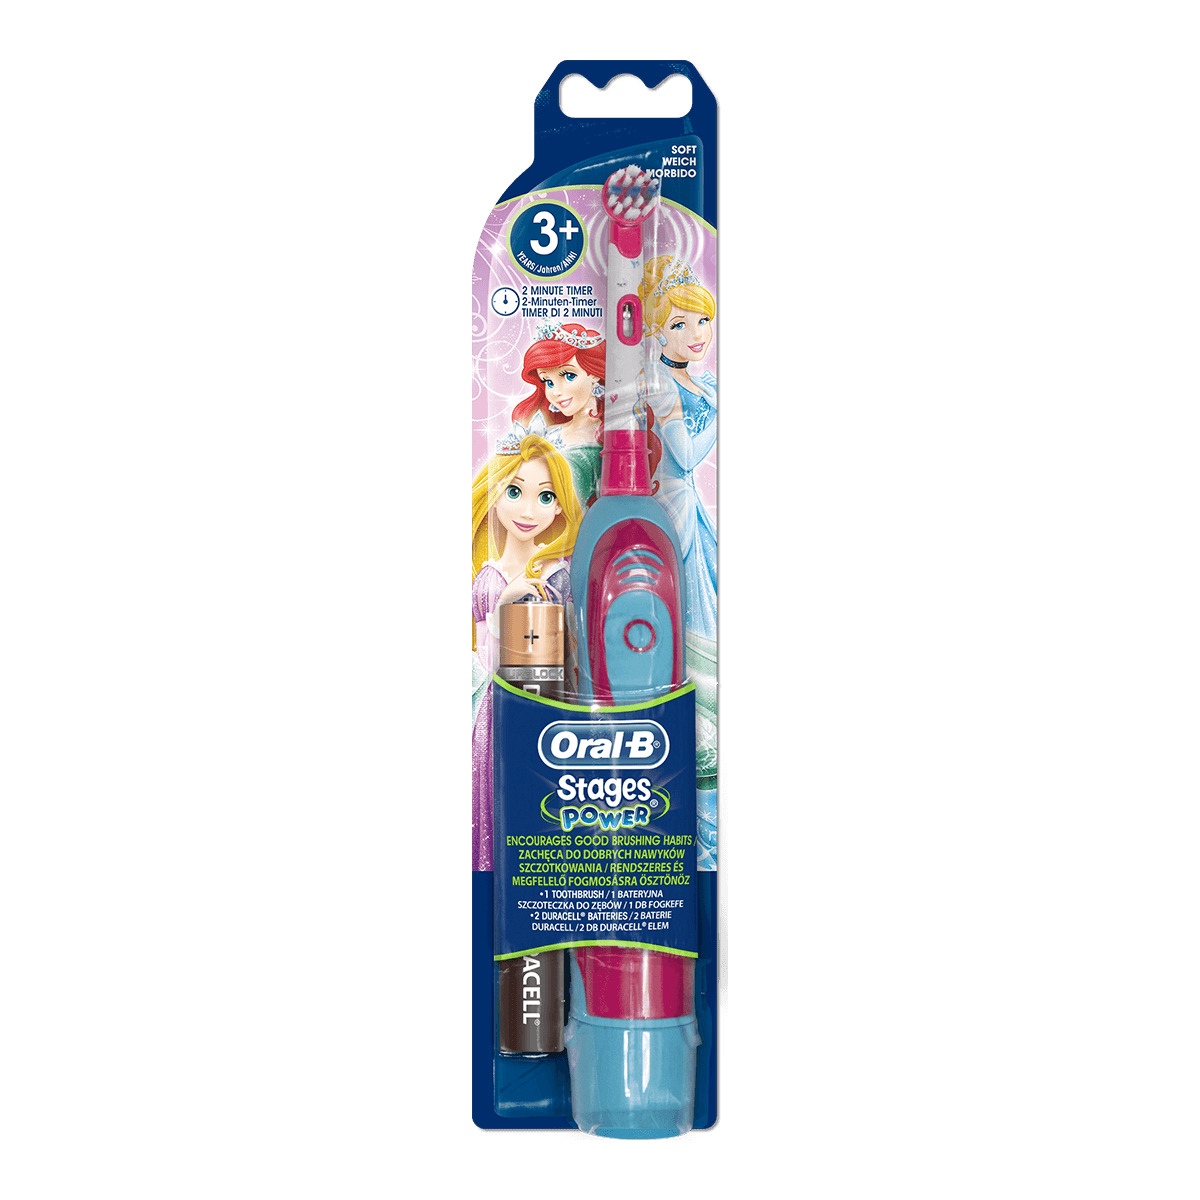 Oral-B Stages Power Princess Elektrische Zahnbürste mit Batterie